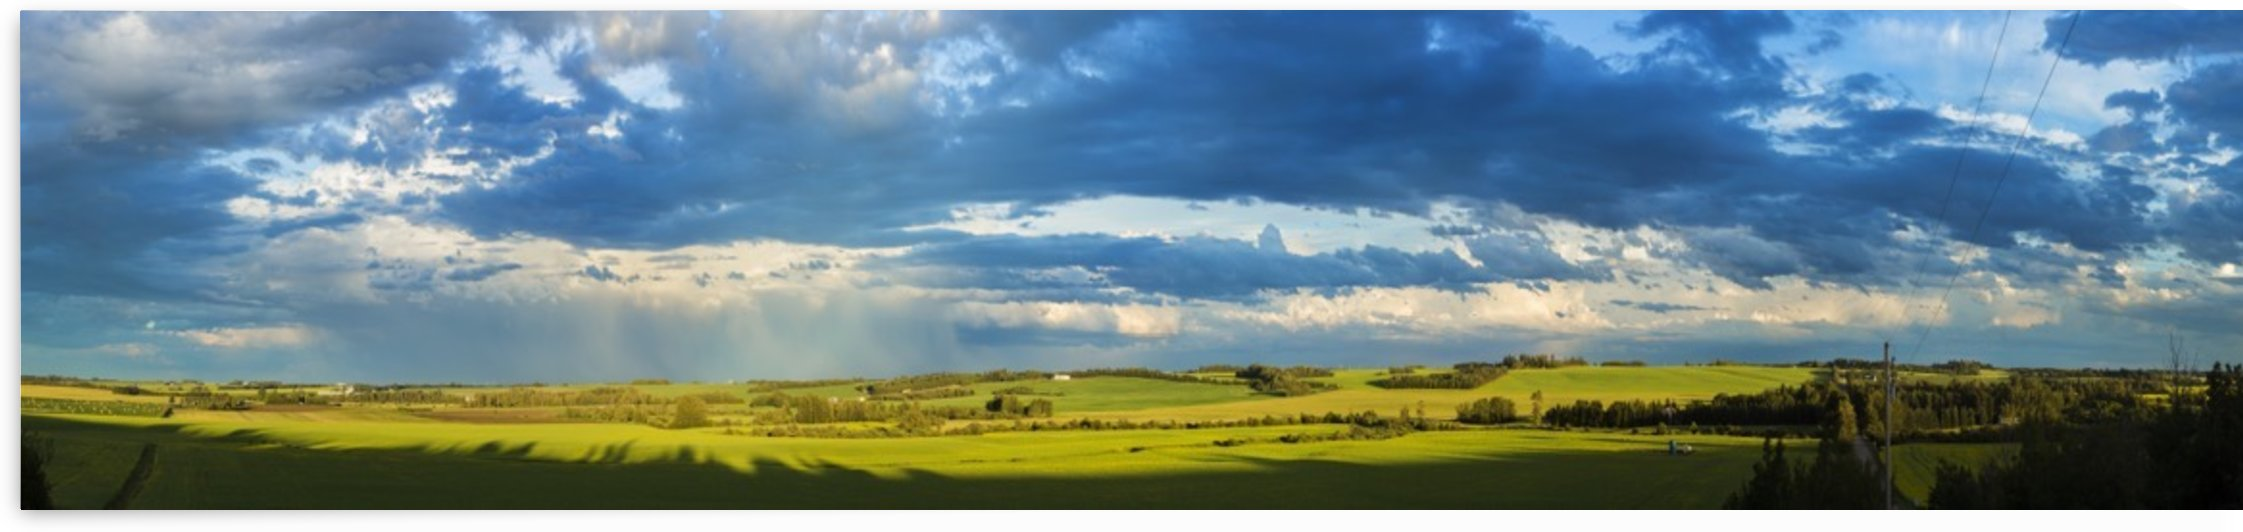 Clouds in a blue sky cast shadows on the lush, green fields below; Alberta, Canada by PacificStock